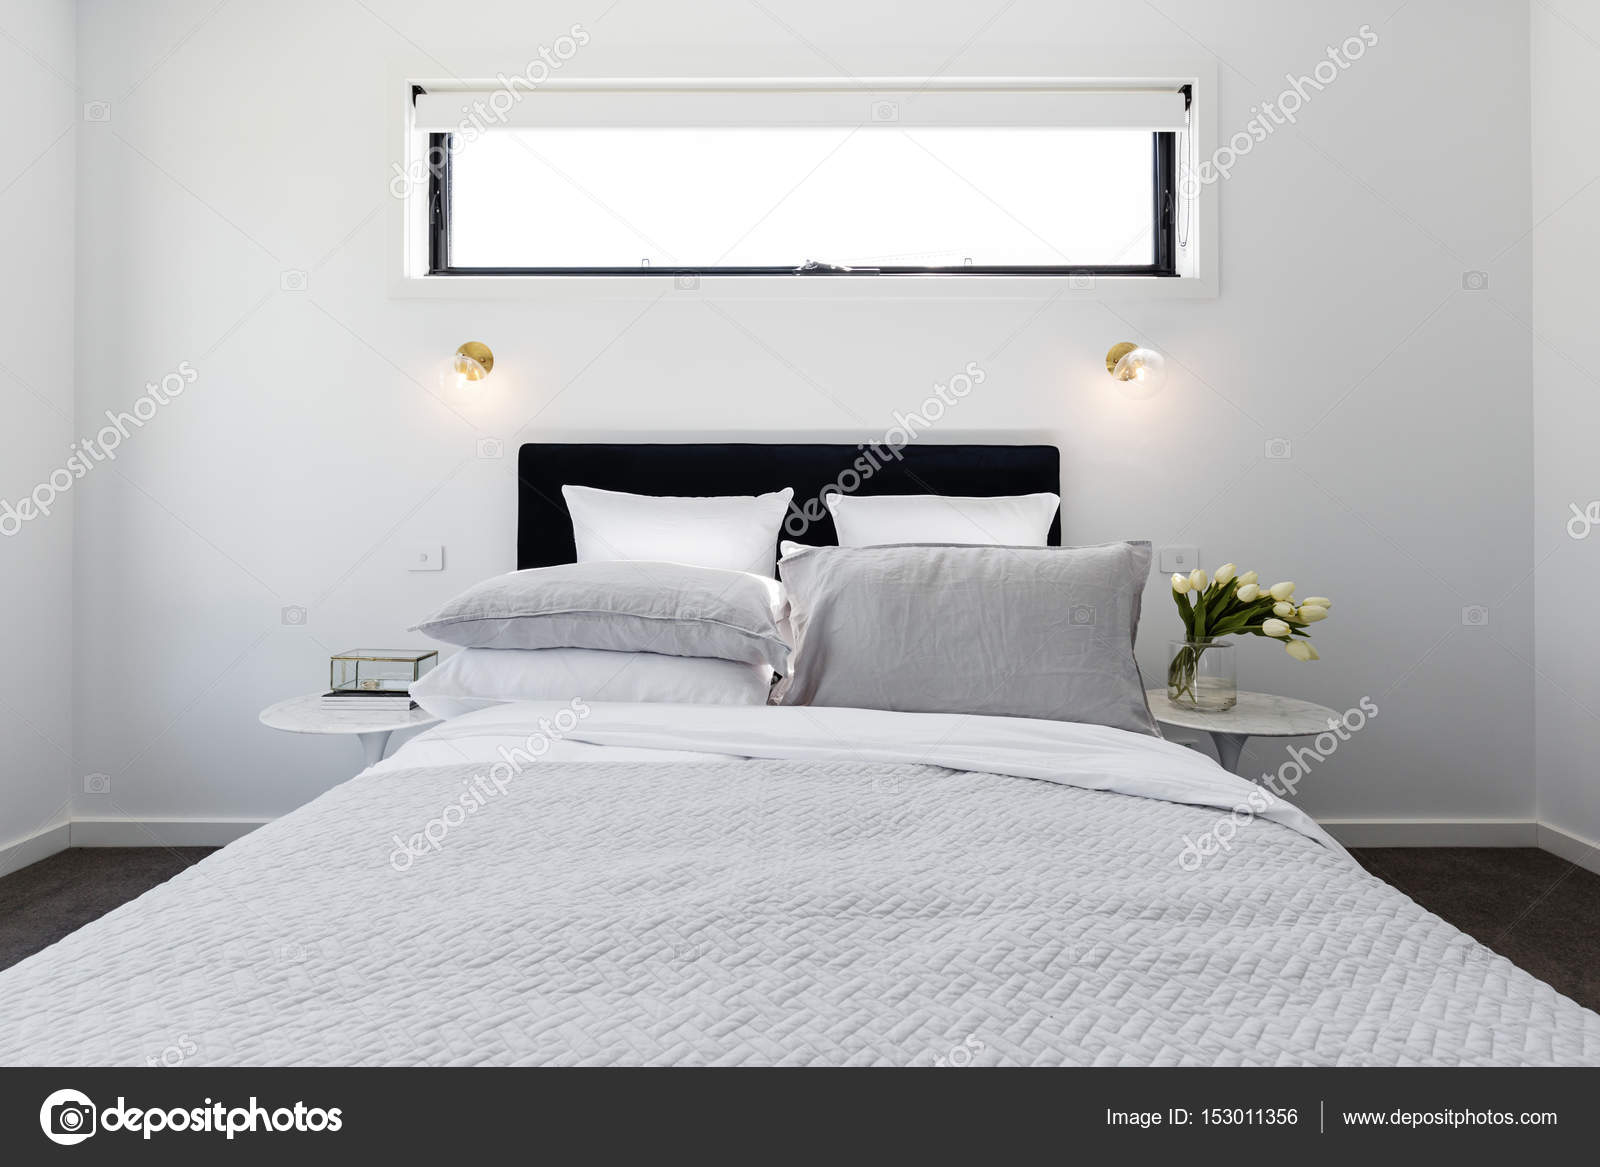 chambre des ma tres moderne de luxe photographie jodiejohnson 153011356. Black Bedroom Furniture Sets. Home Design Ideas